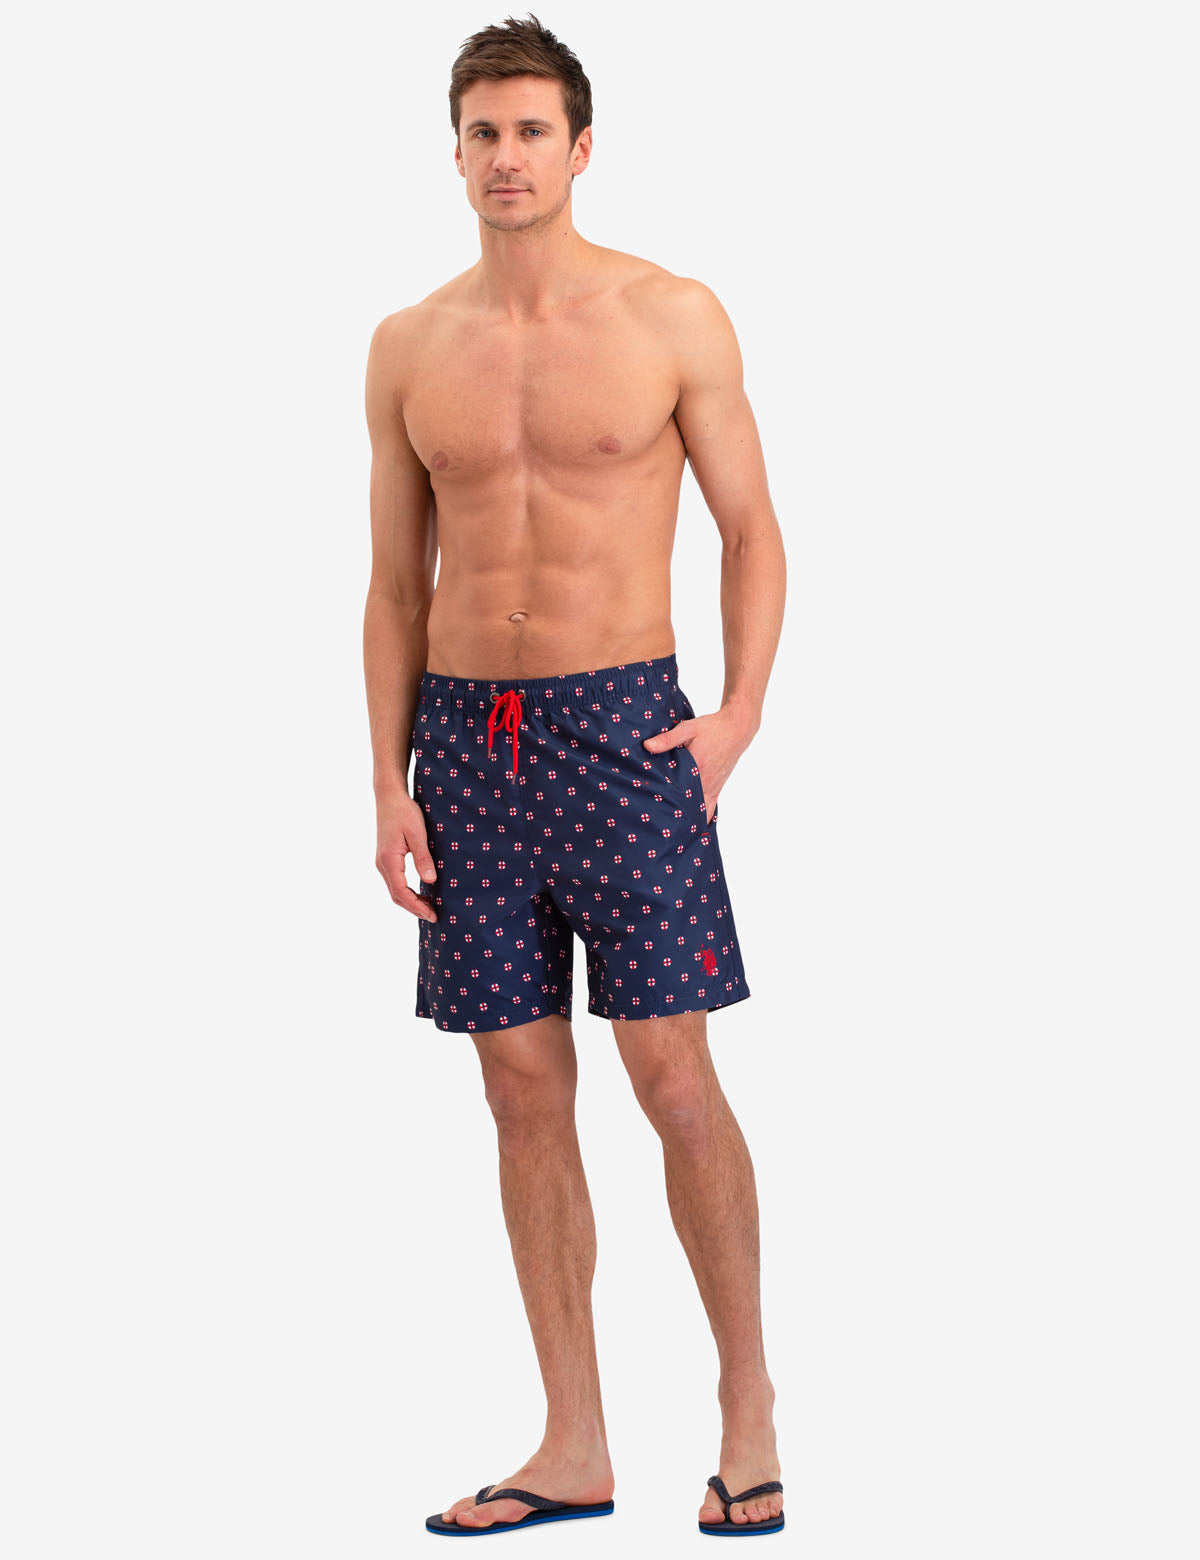 LIFE PRESERVER SWIM TRUNKS - U.S. Polo Assn.